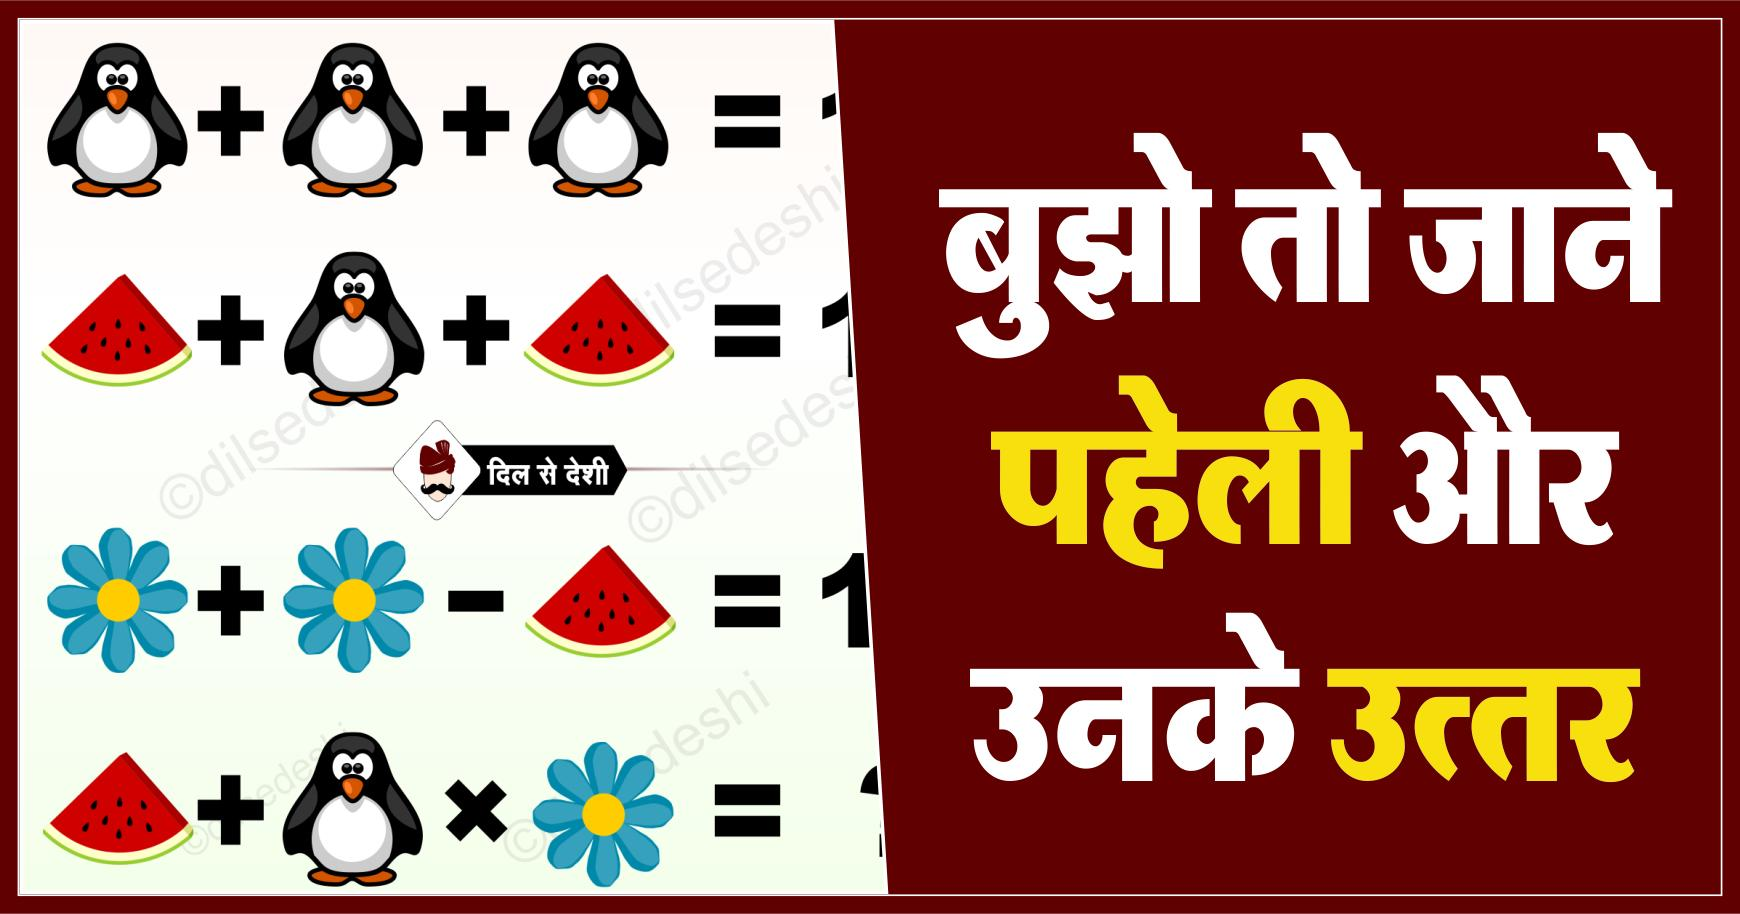 Penguin, Watermelon and Flower Logical Puzzle Quiz Questions Answers (1)